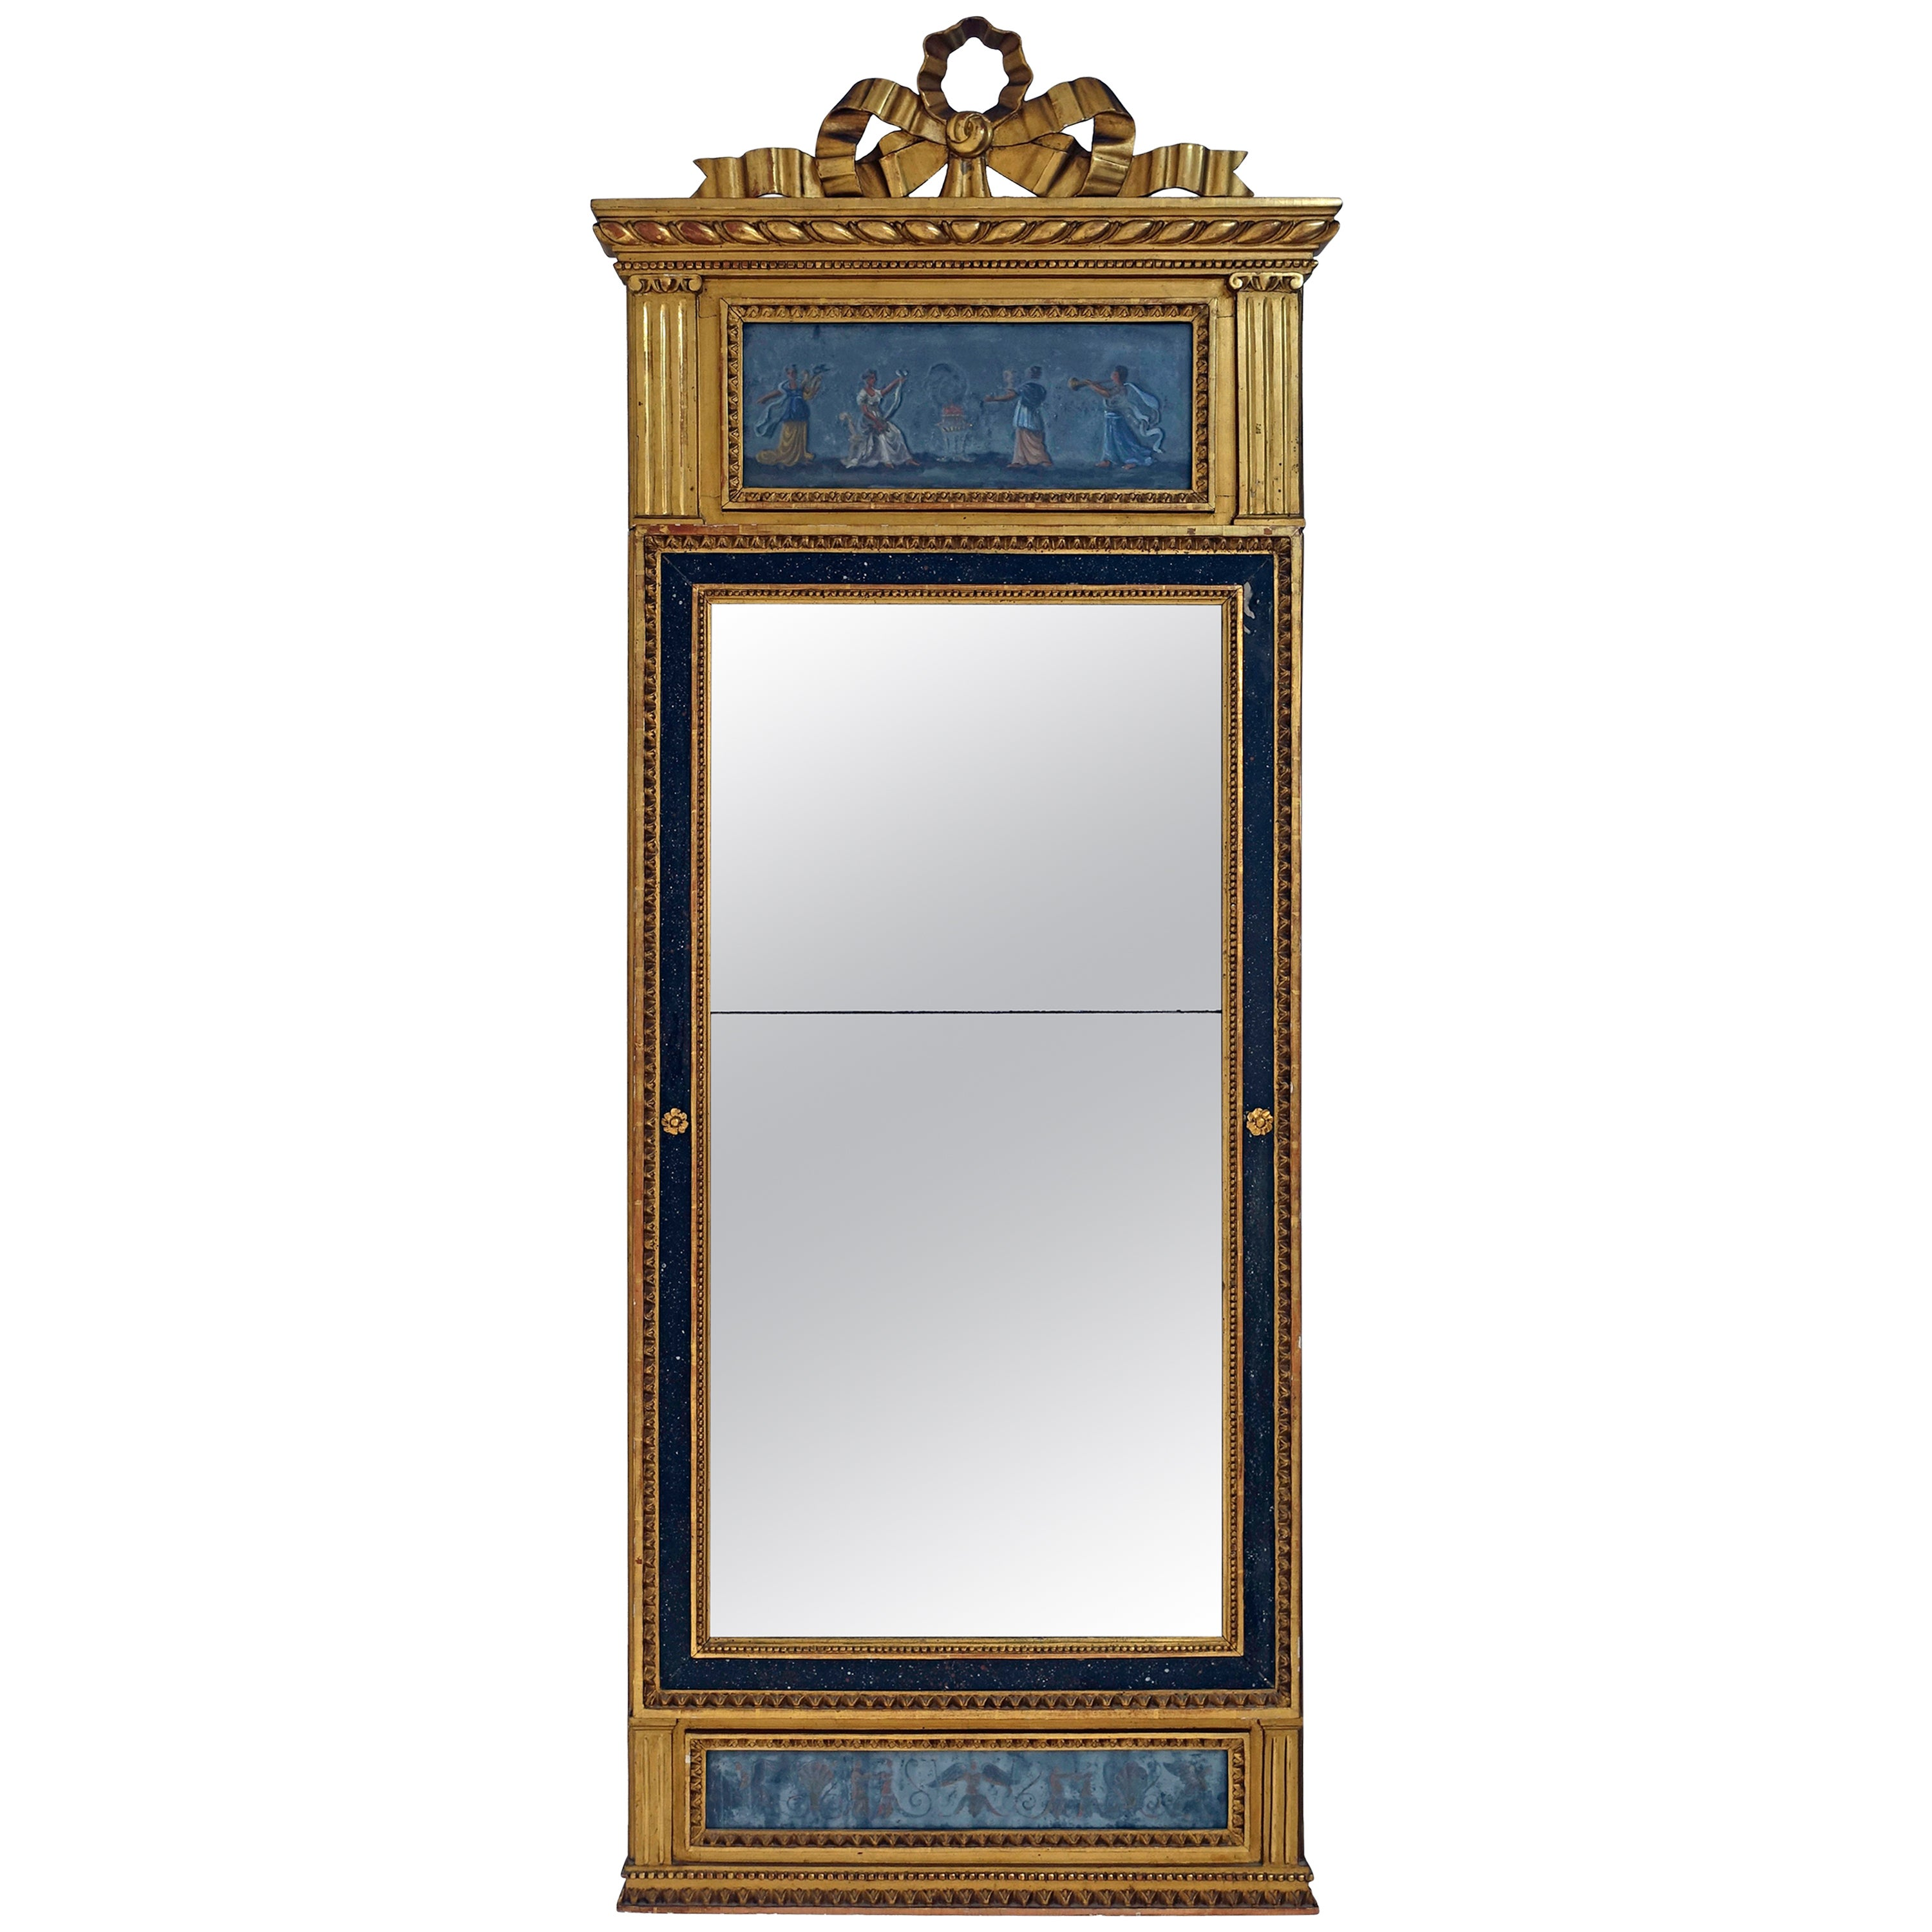 French Neoclassical Giltwood and Eglomise Pier Mirror